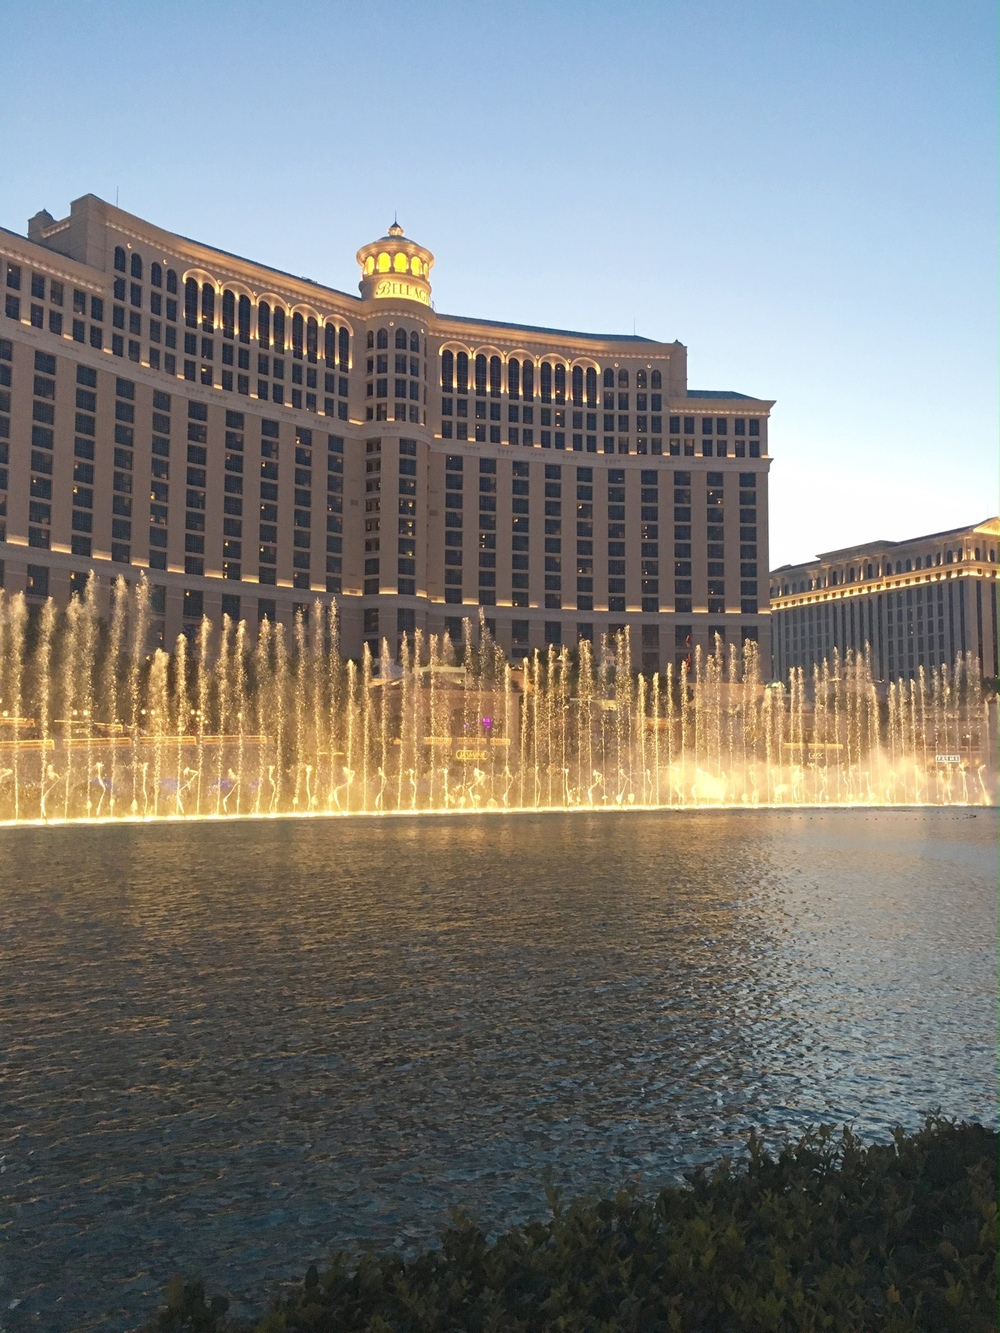 The Fountains at The Bellagio